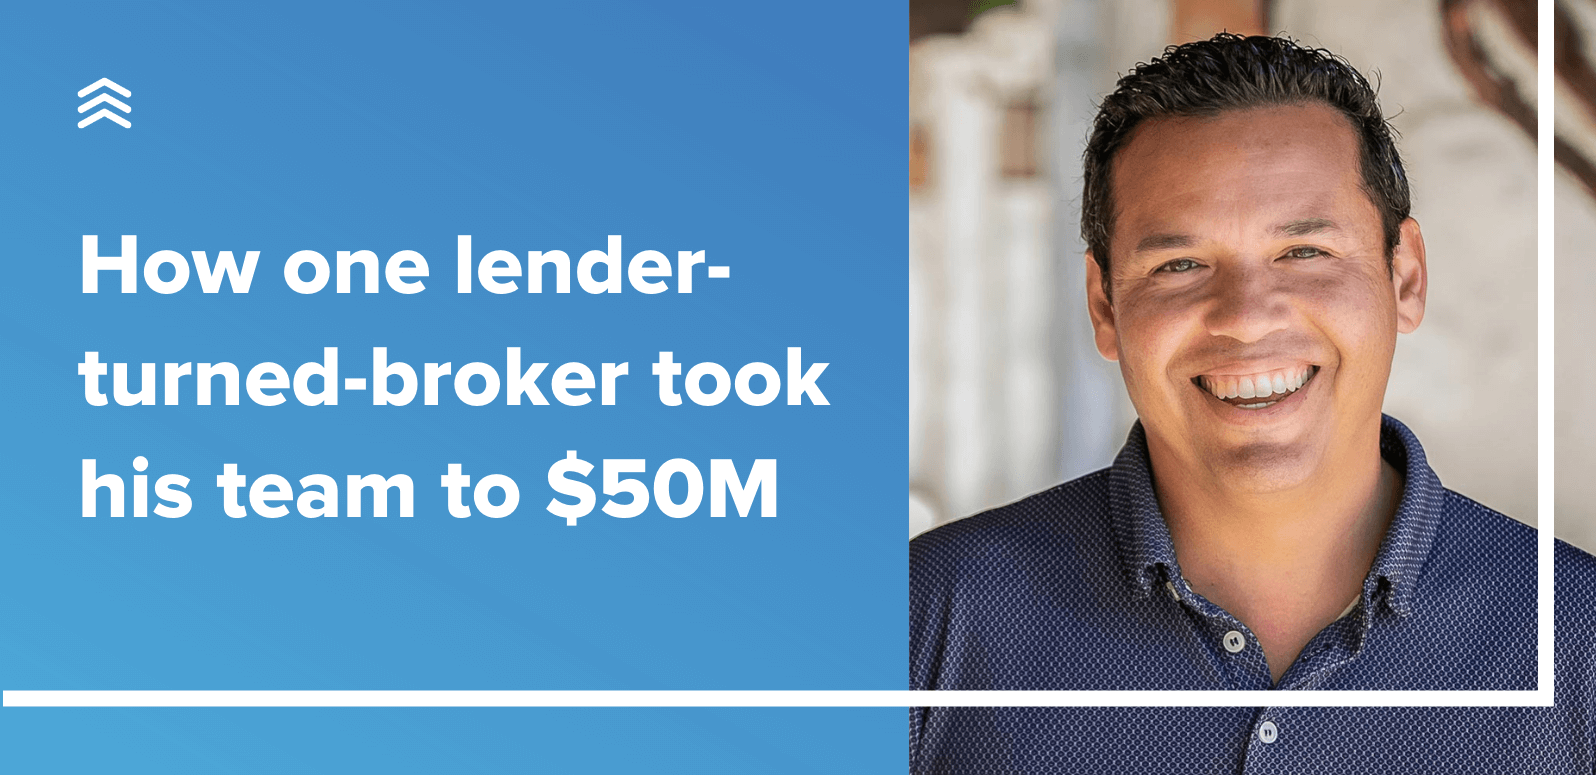 From Loans to Luxury: How this Lender-turned-Broker Took His Team to $50 Million in a Premium Real Estate Market